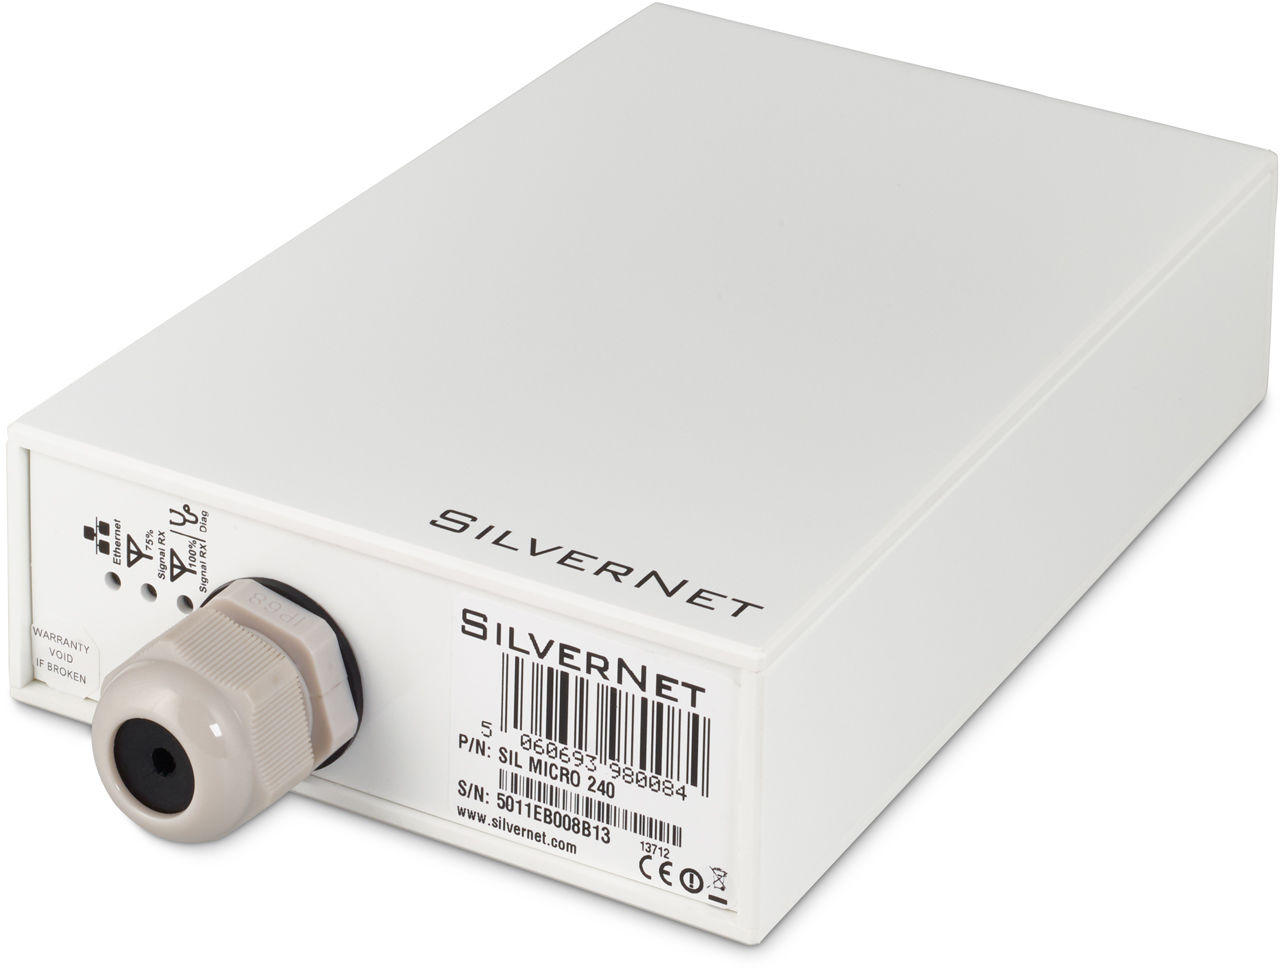 Silvernet POINT TO POINT RADIO LINK - 240mbps UP TO 2km LINK SIL MICRO 240-PCP - eet01